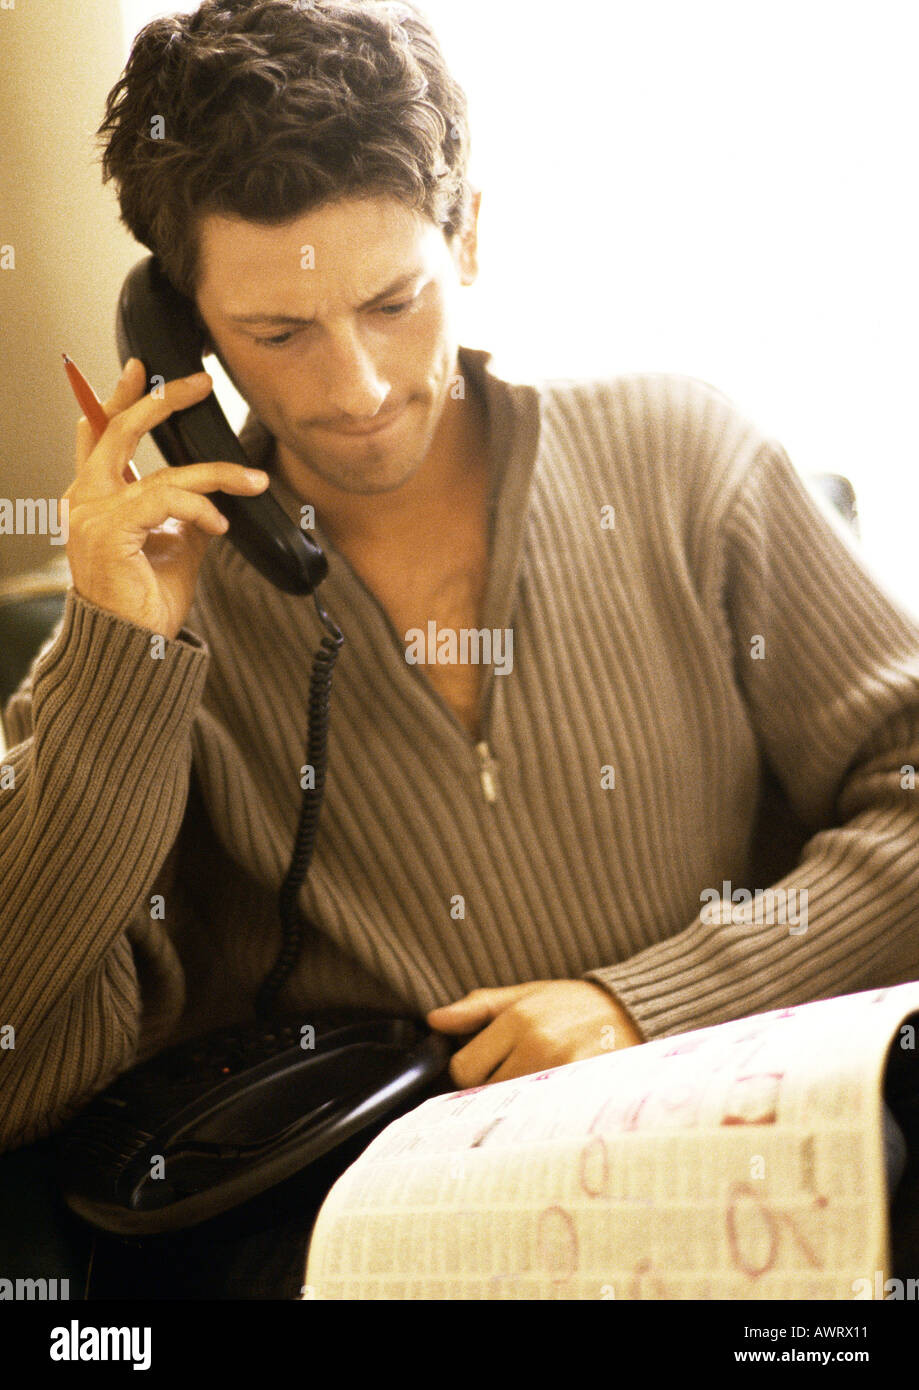 Man phoning with newspaper on knees - Stock Image